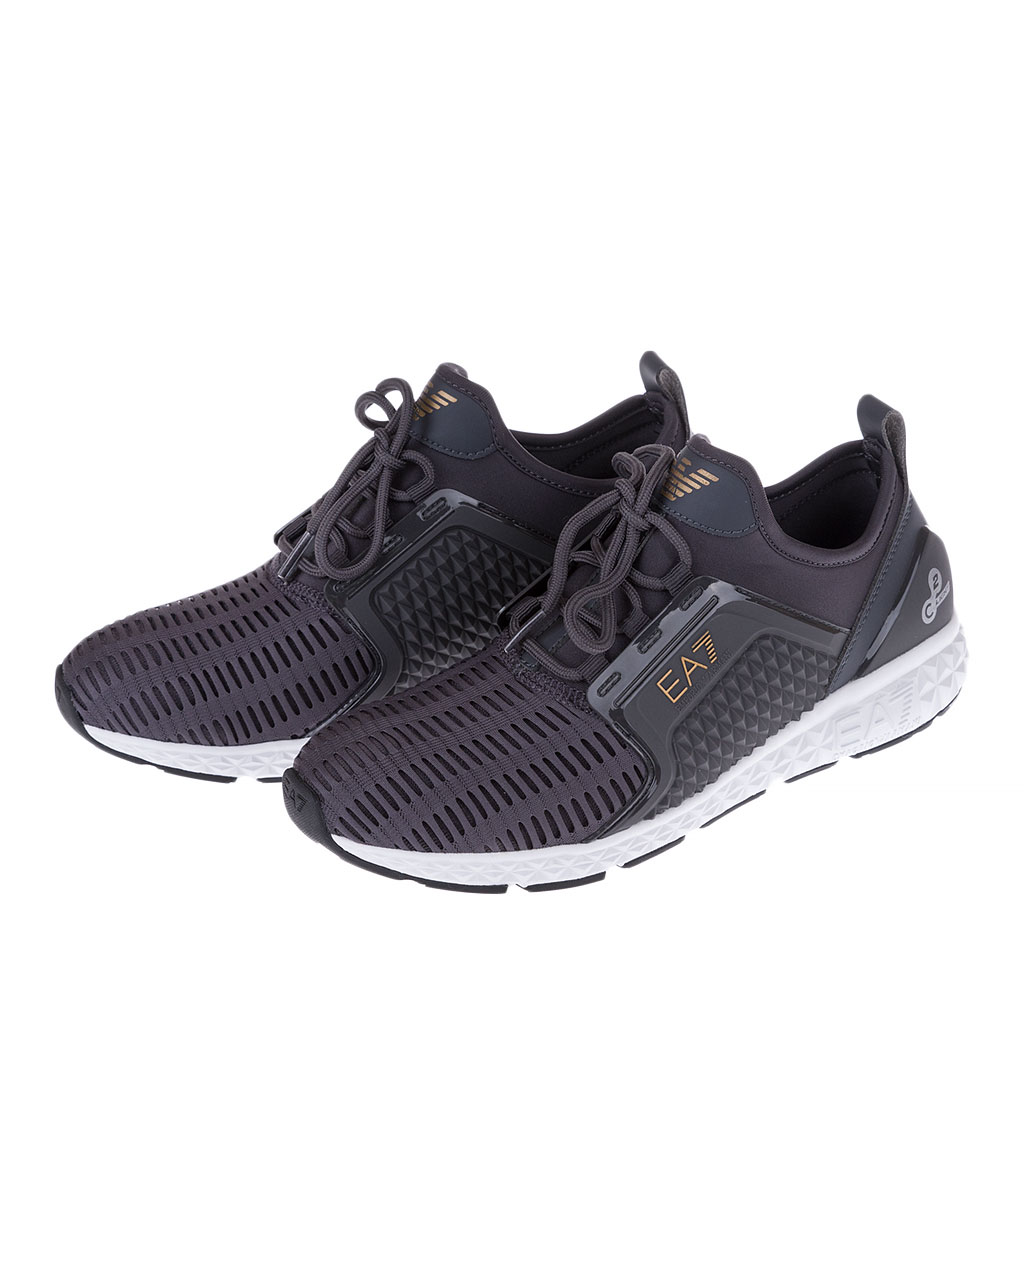 Men's shoes X8X012-XK056-G356/92-3 (2)